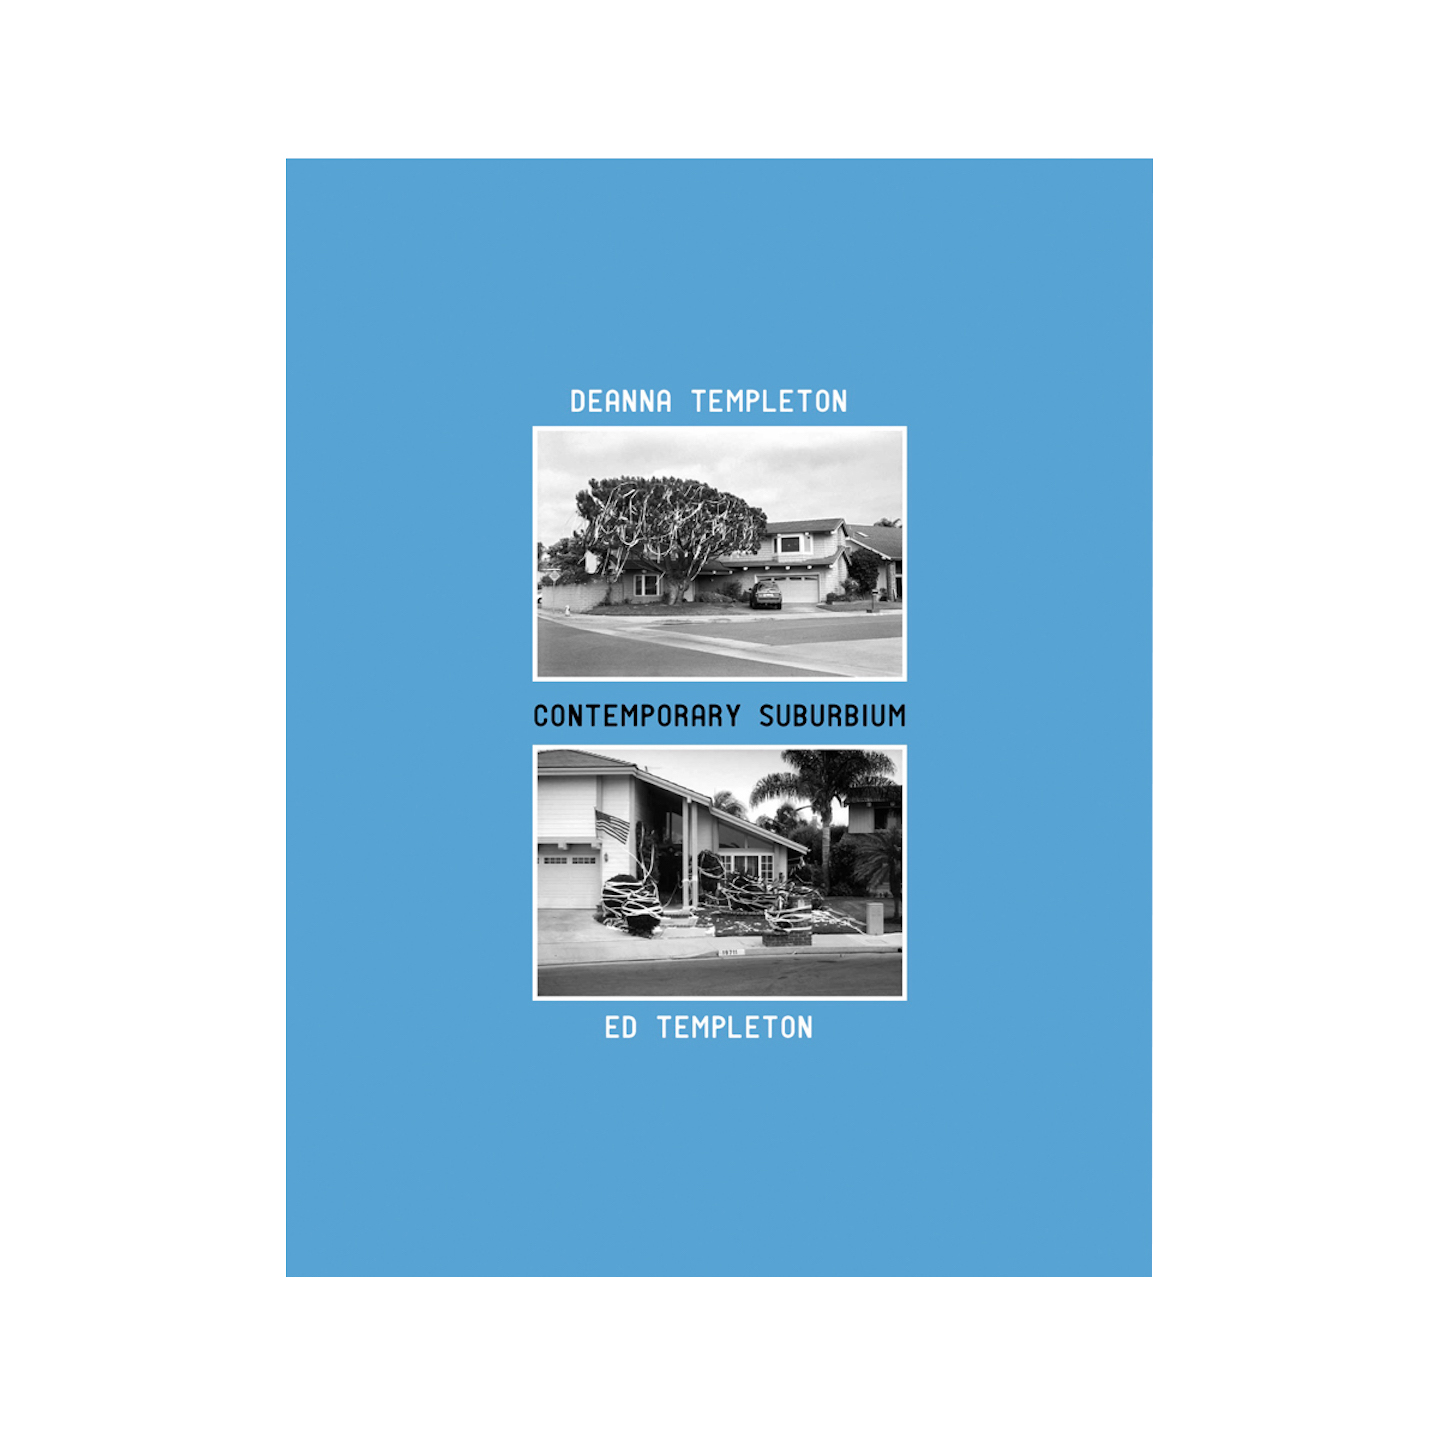 Ed Templeton: Contemporary Suburbium, Special Limited Edition (with 2 Prints)